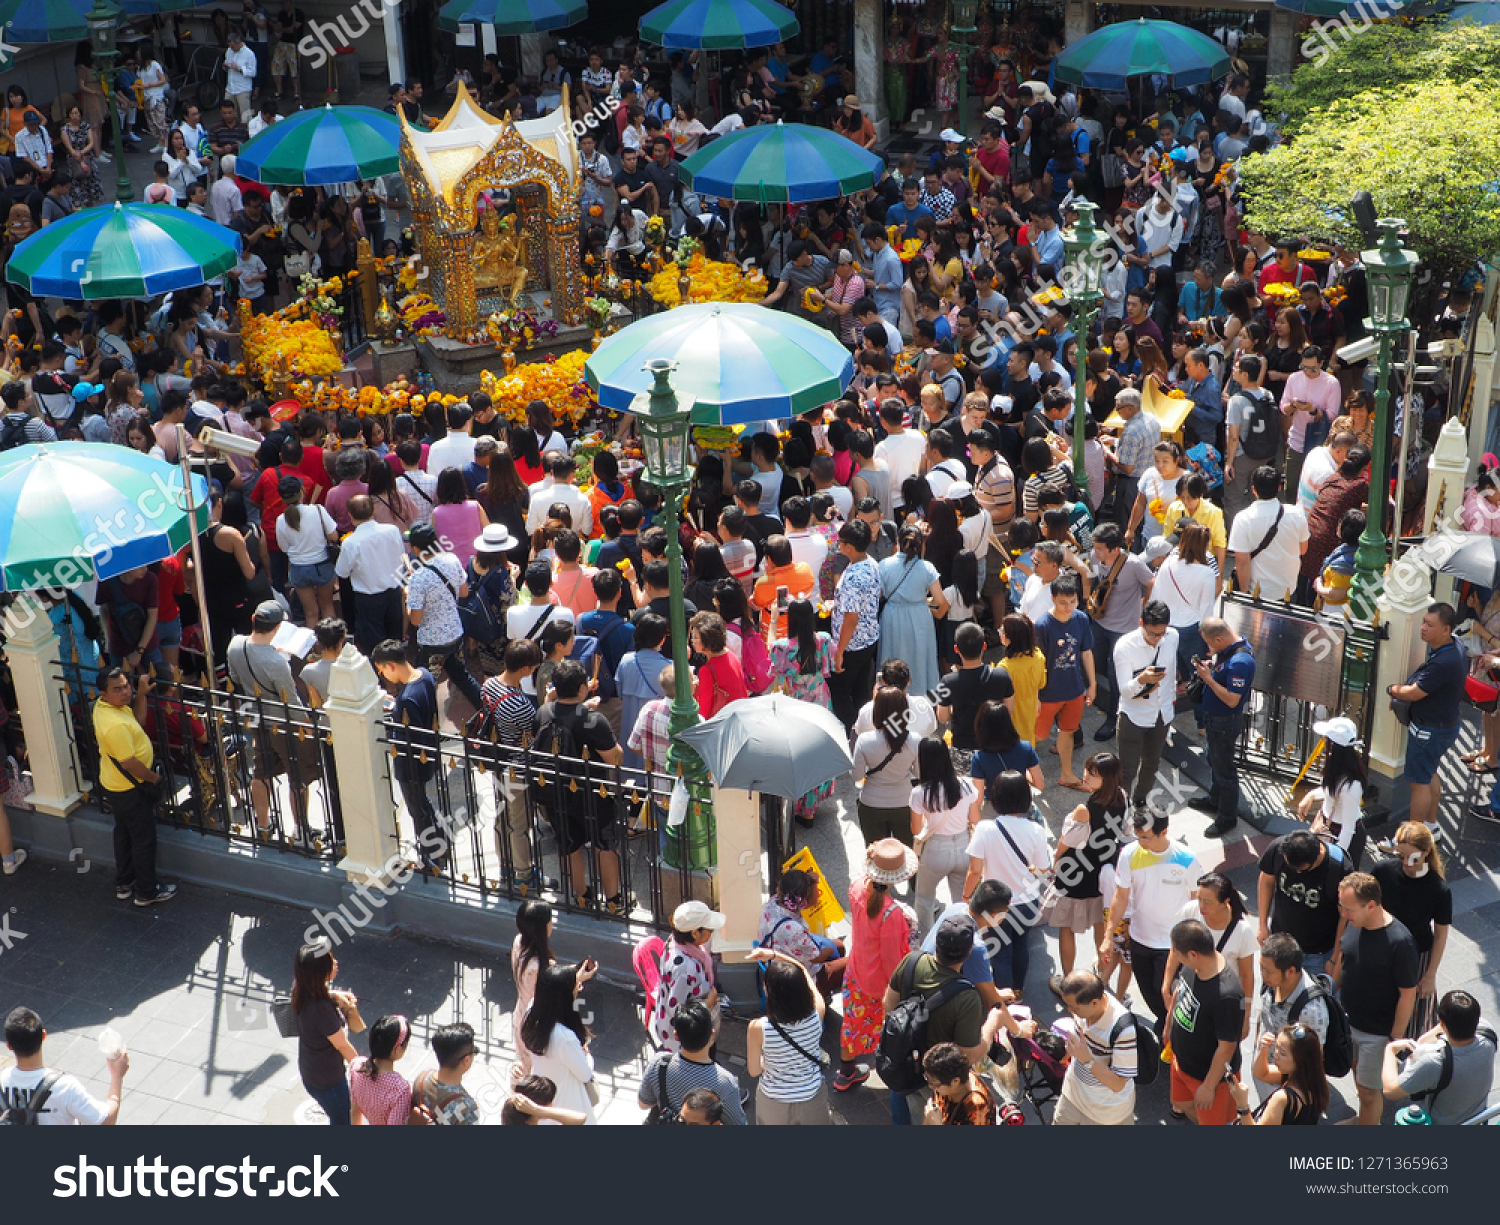 BANGKOK, THAILAND - JANUARY 1, 2019: Foreigners and local people visit and worship the Erawan Shrine at the Ratchaprasong intersection on Ratchadamri Road on January 1, 2019 in Bangkok, Thailand.